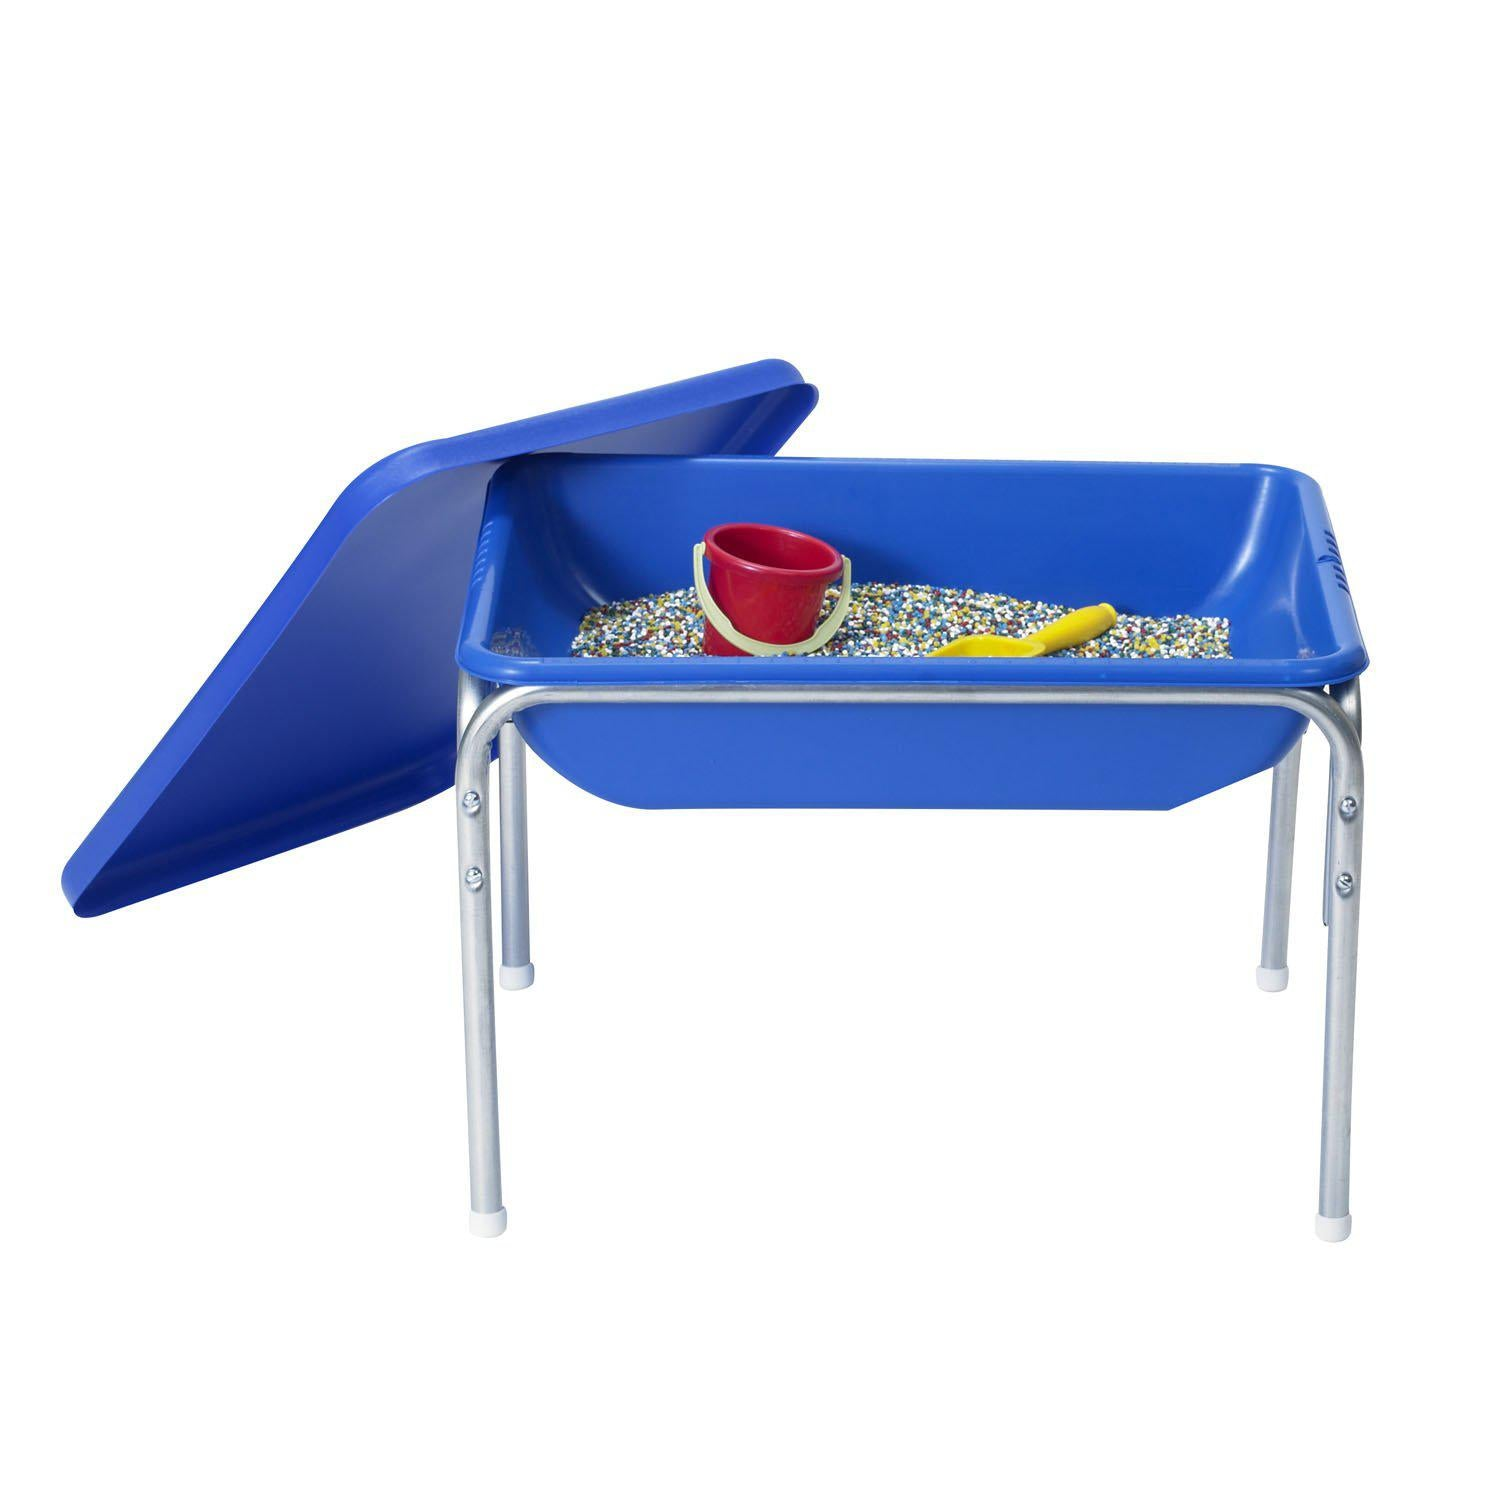 Small Sensory Table and Lid Set